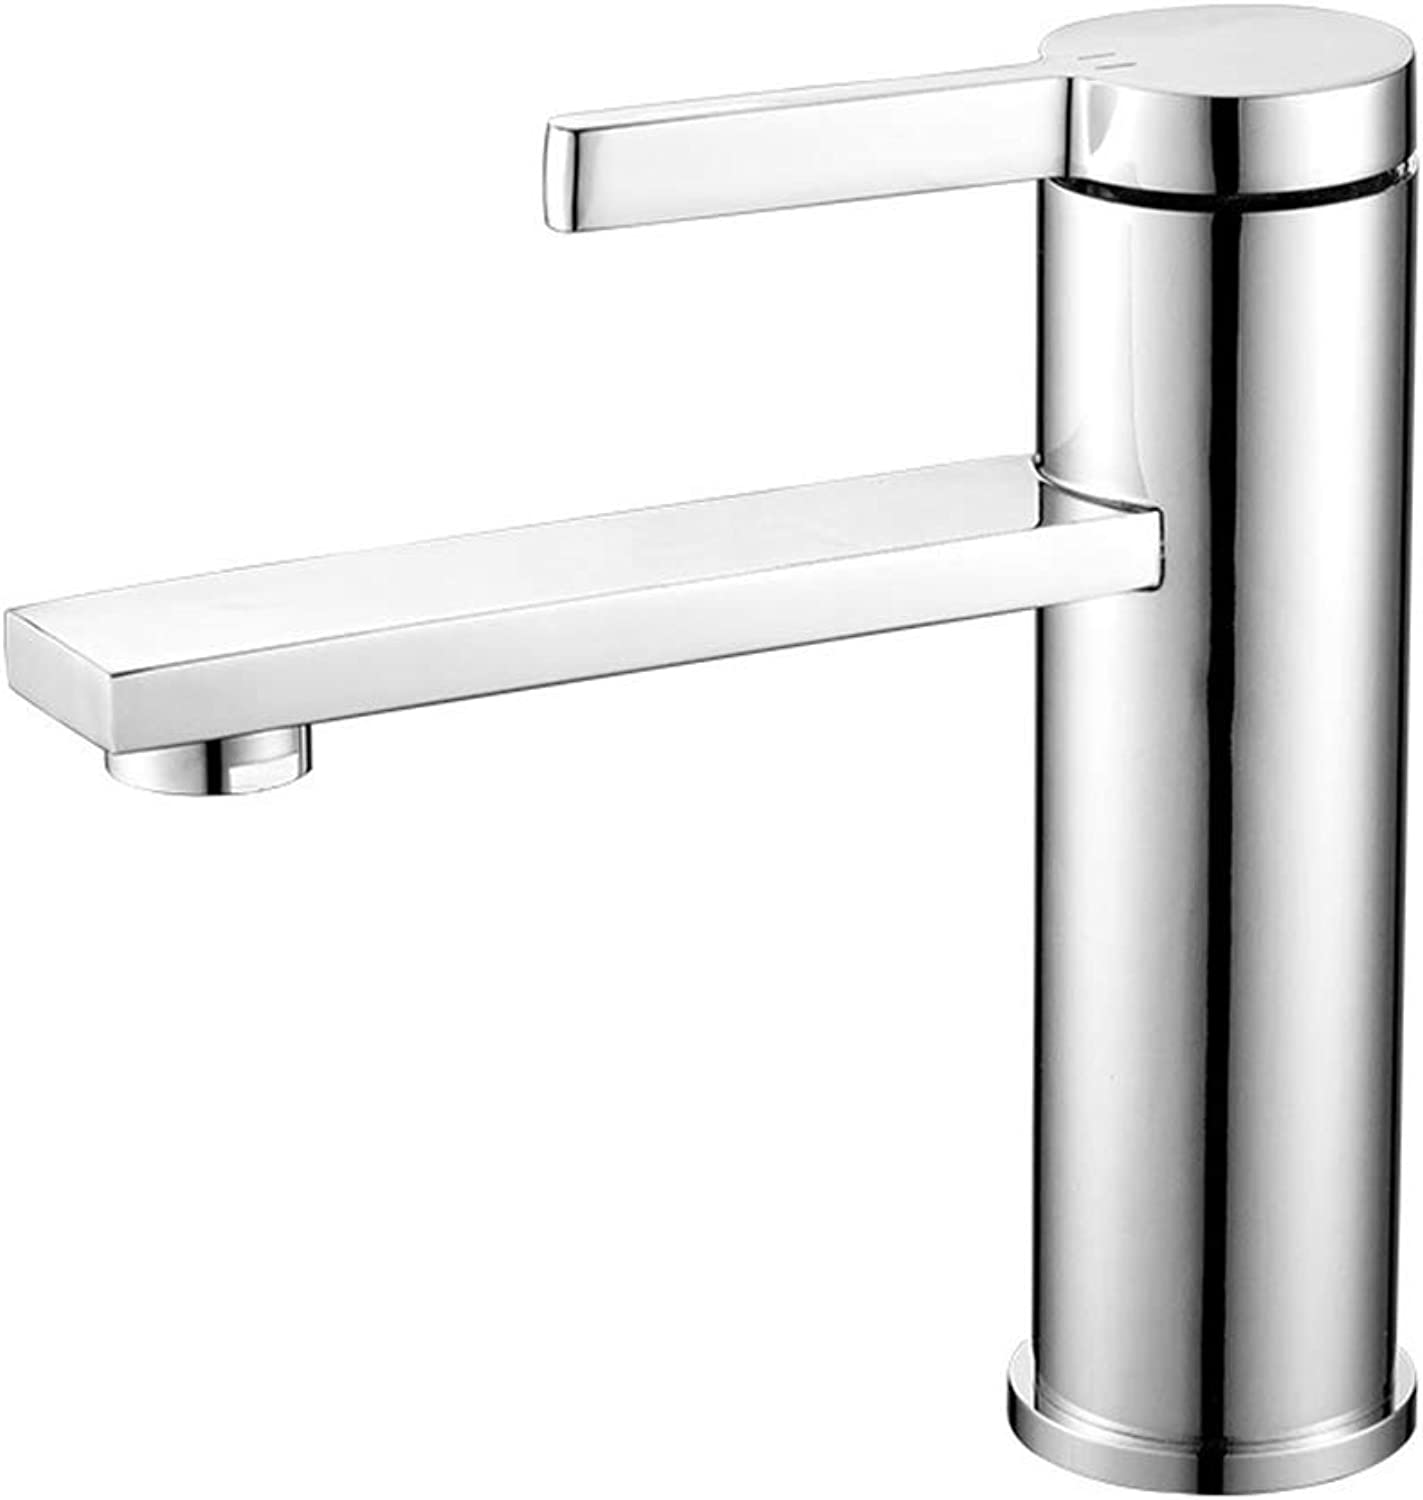 Bathroom taps,Copper Plated Bathroom Faucet, Mixing Single Hole Faucet